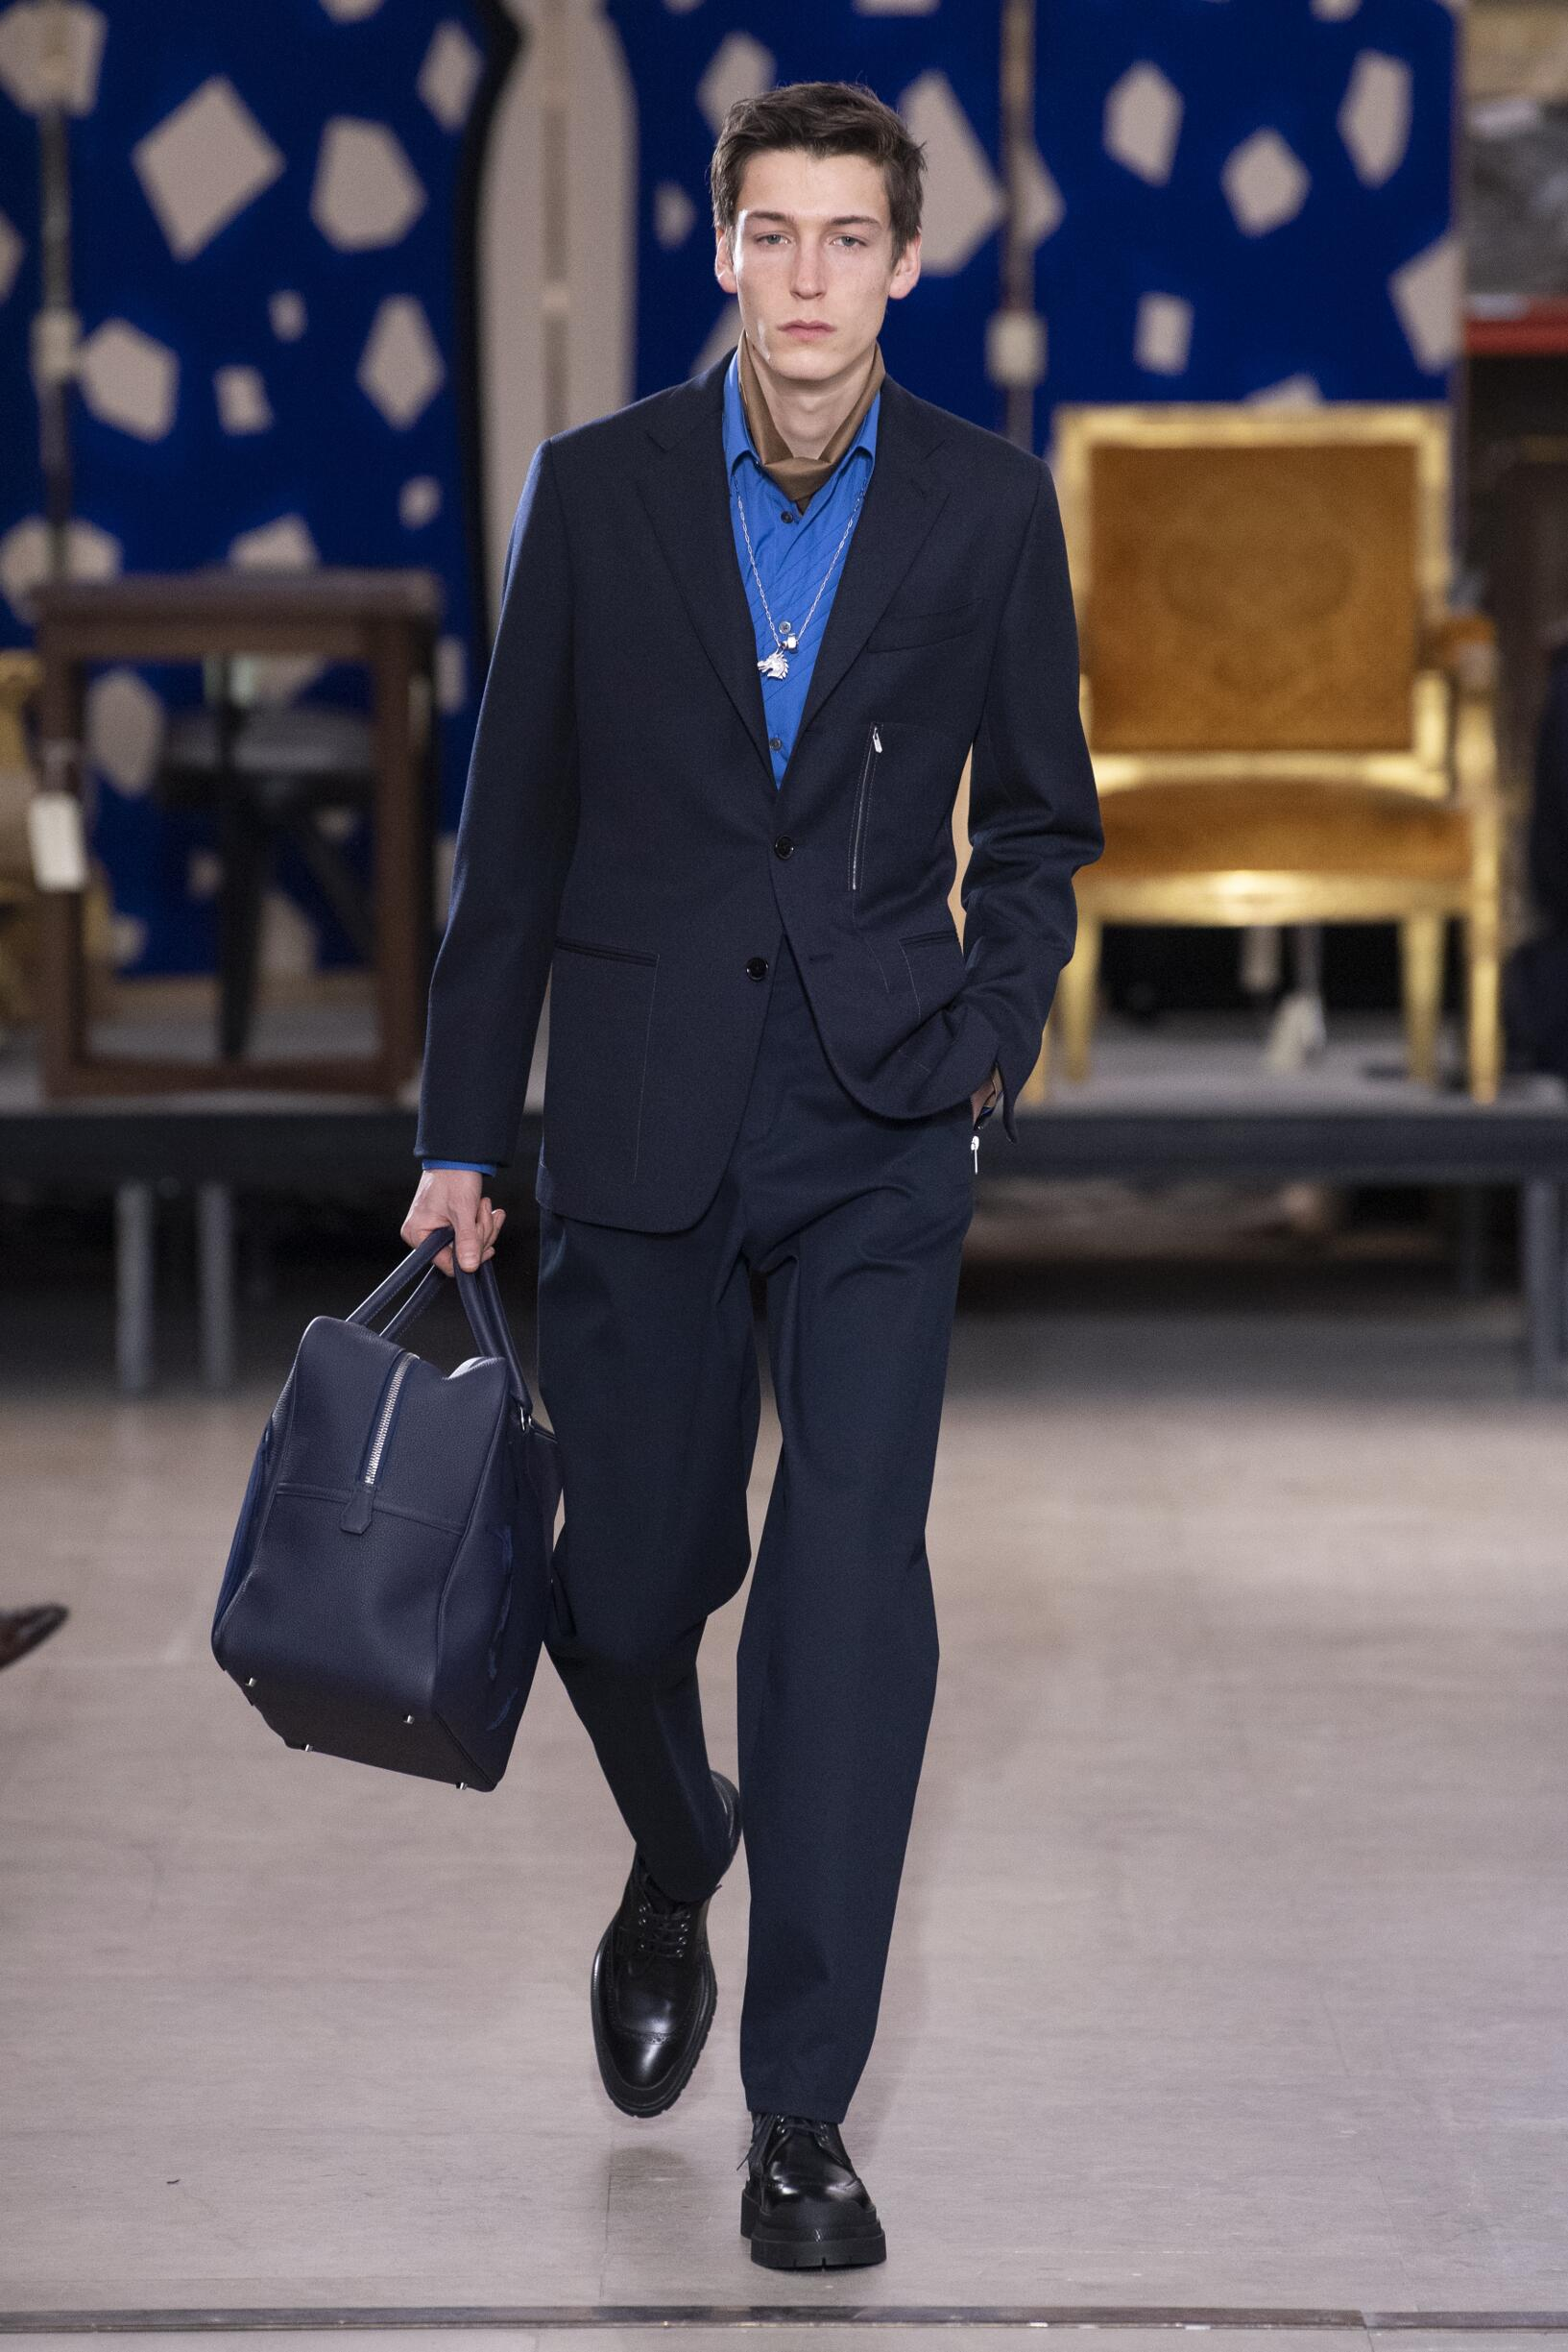 FW 2019-20 Fashion Show Hermès